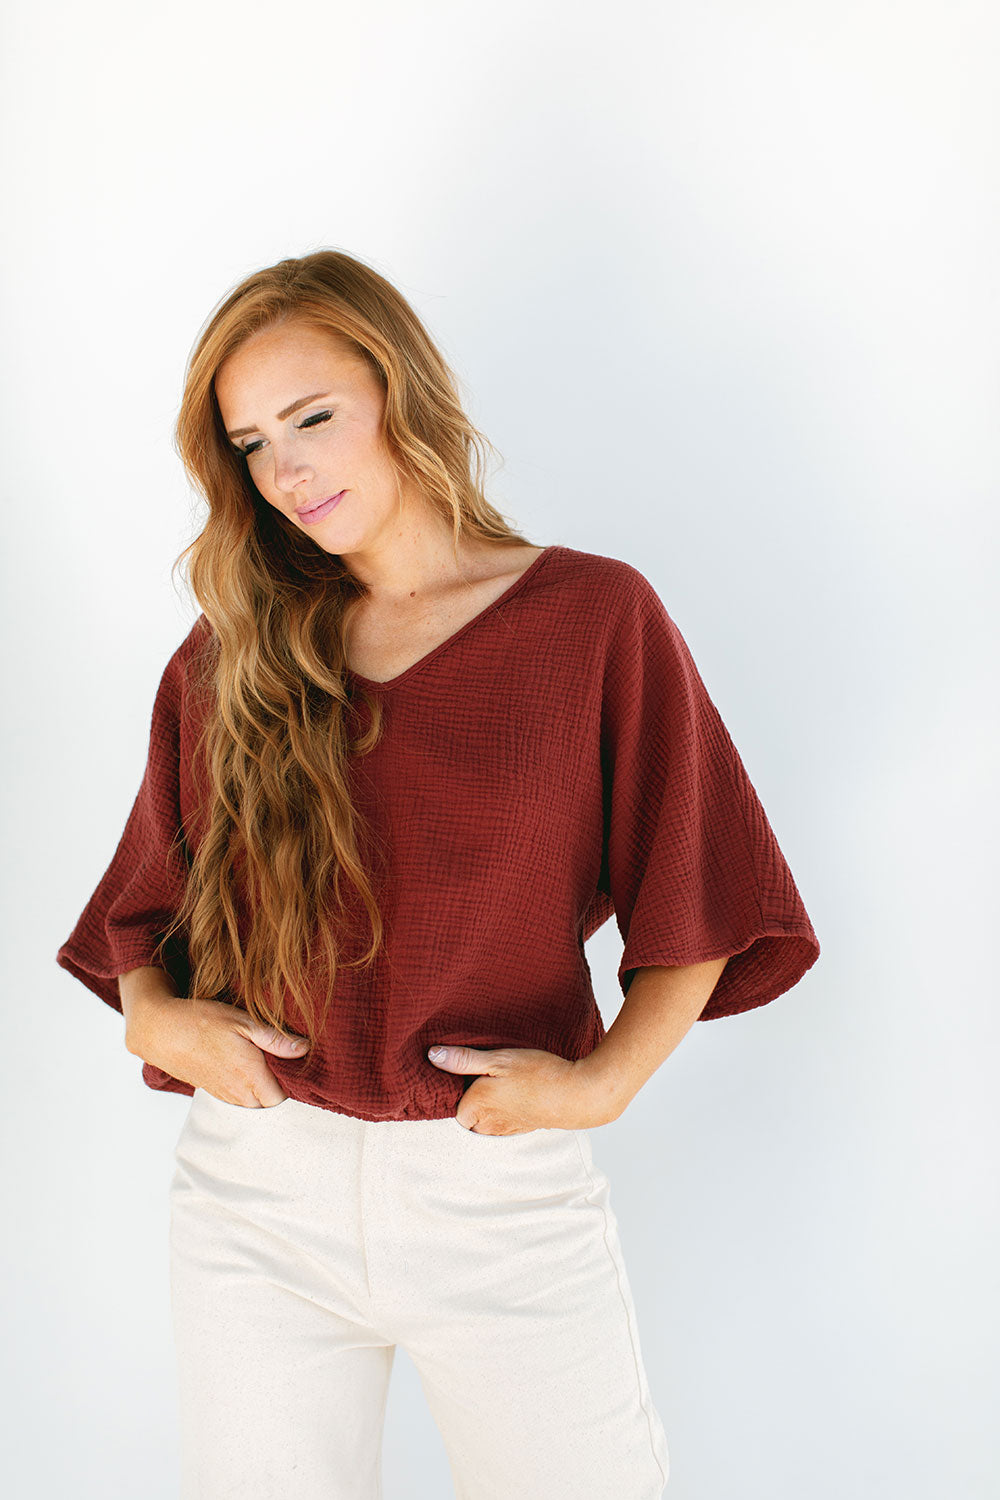 The Gauze Dolman Top in Red Pear